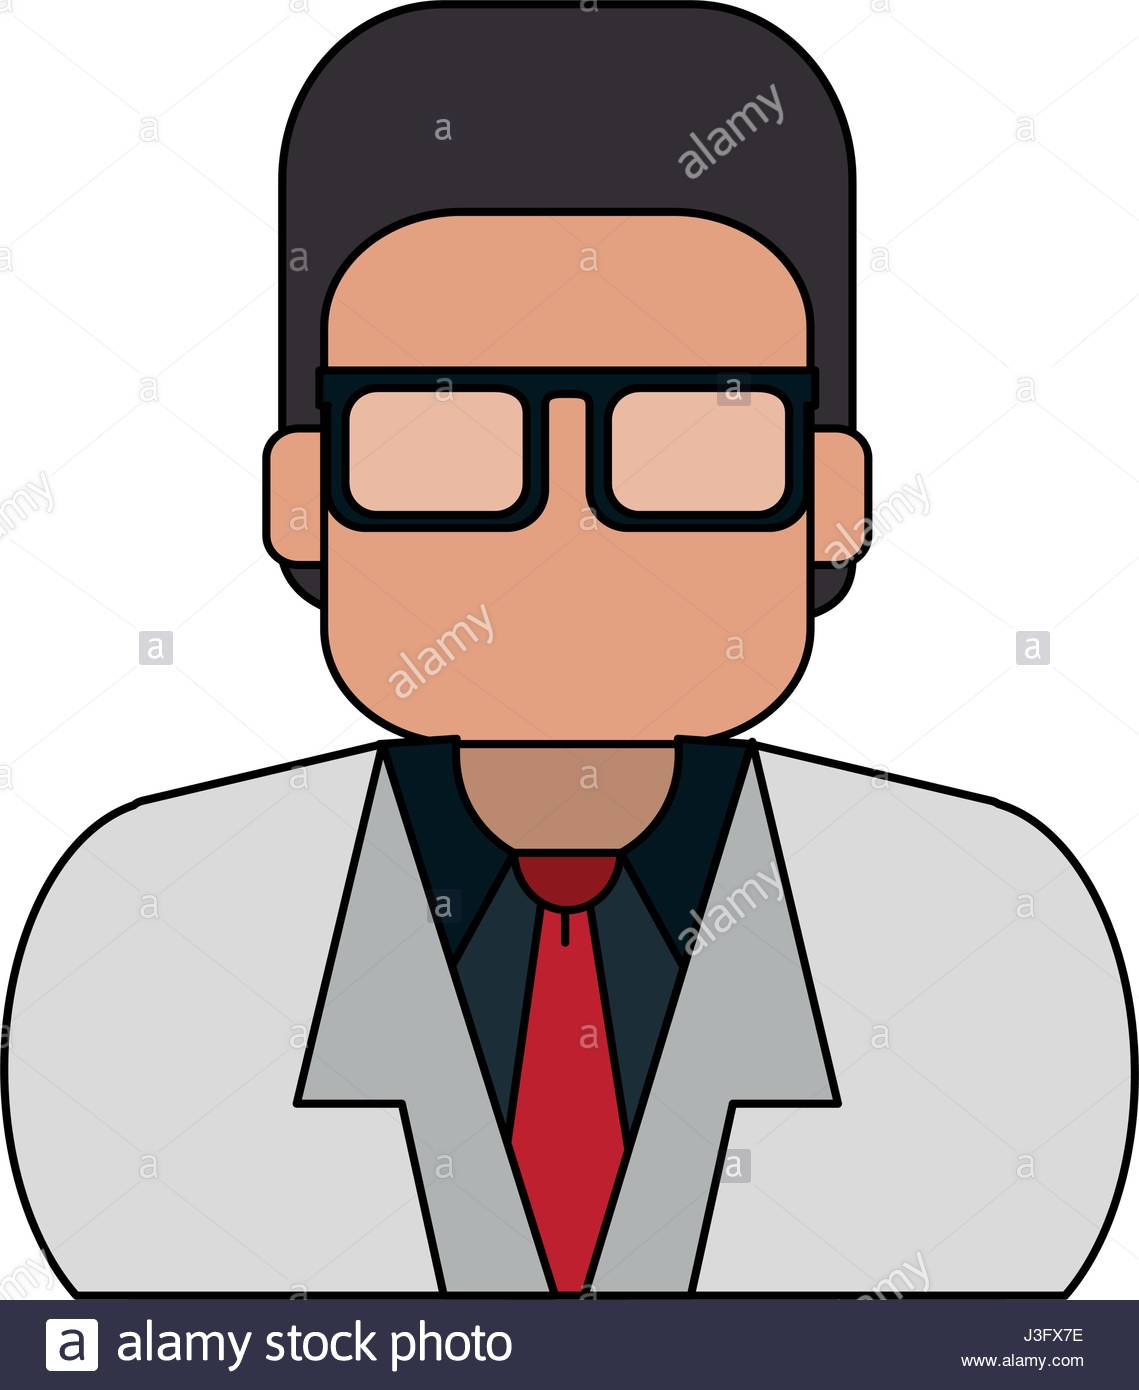 1139x1390 Colorful Silhouette Half Body Executive Faceless Man With Glasses